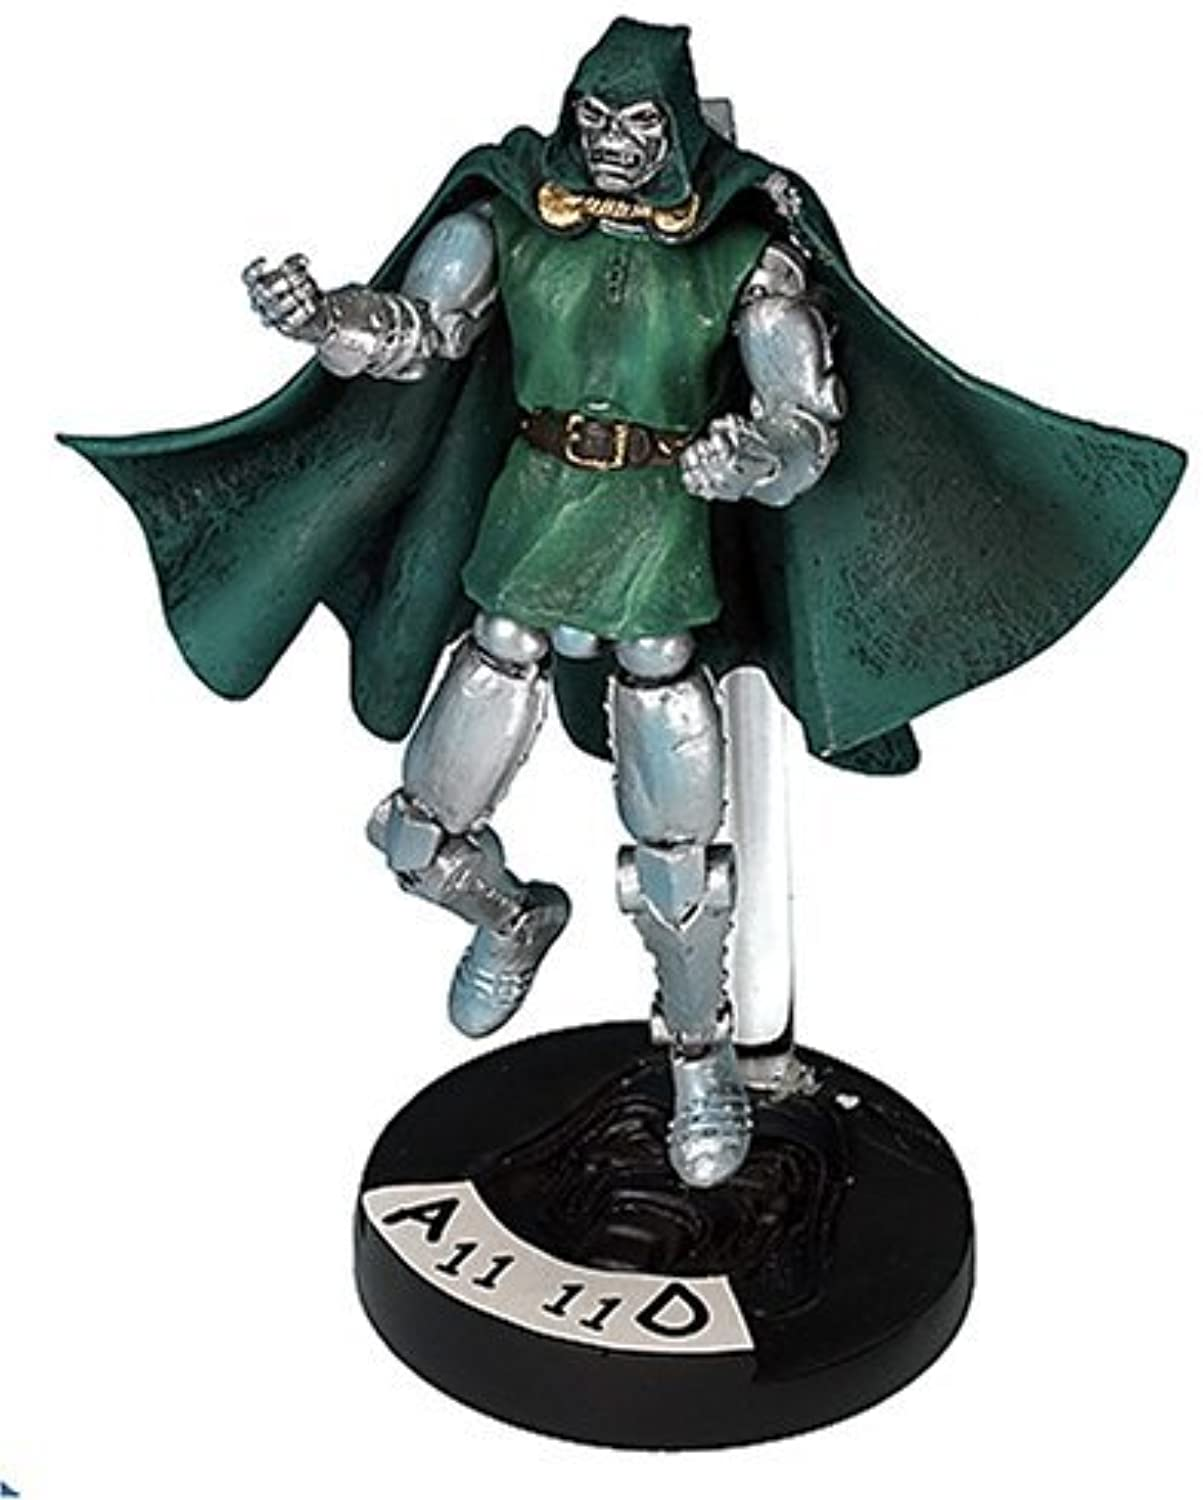 promociones emocionantes Marvel Legends Legends Legends Showdown Battle  Dr. Doom by Juguete Biz International  Nuevos productos de artículos novedosos.